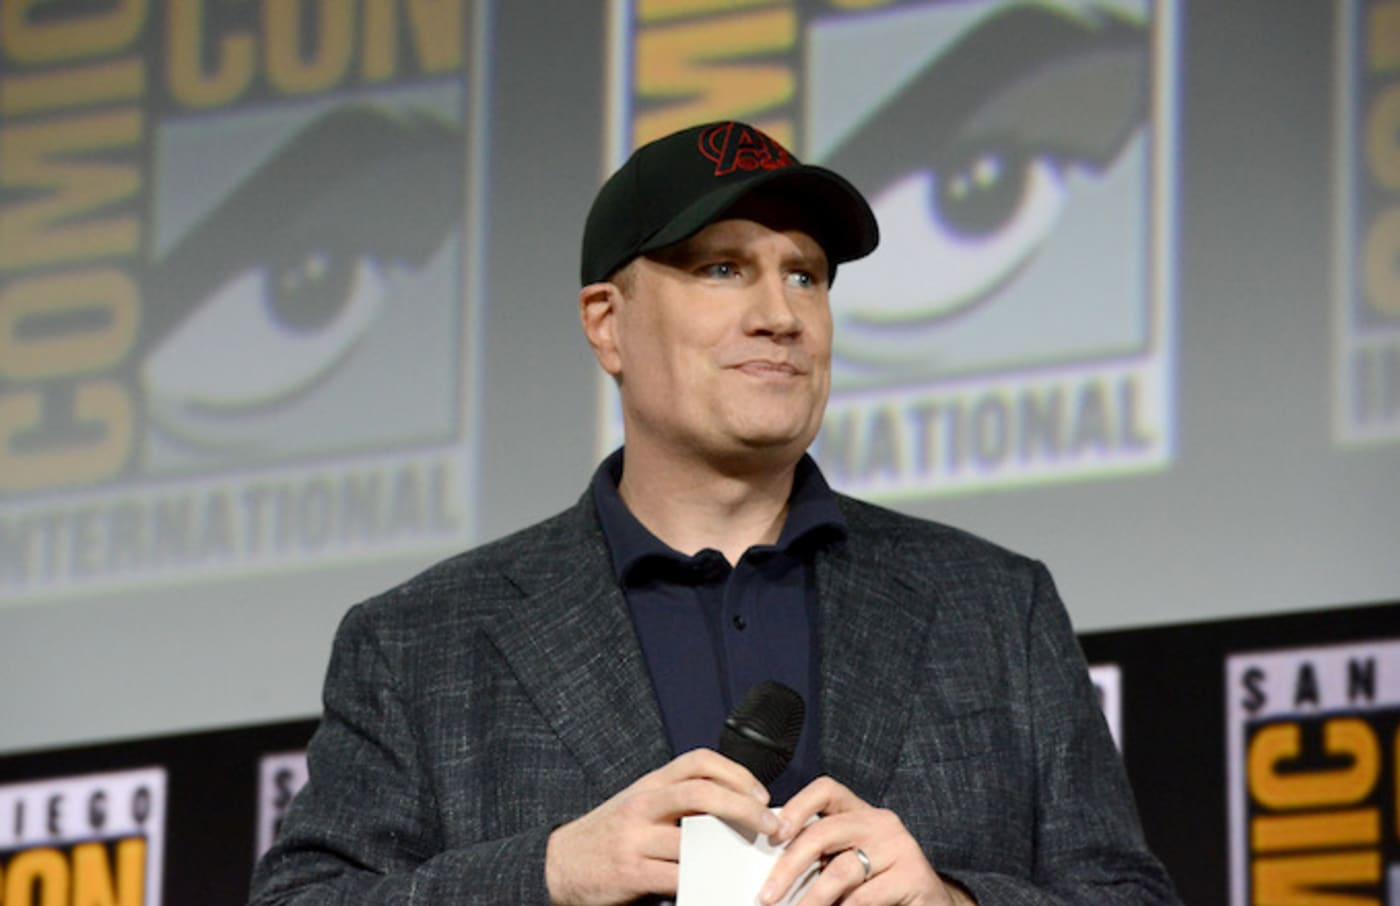 Kevin Feige speaks at the Marvel Studios Panel during 2019 Comic Con International.